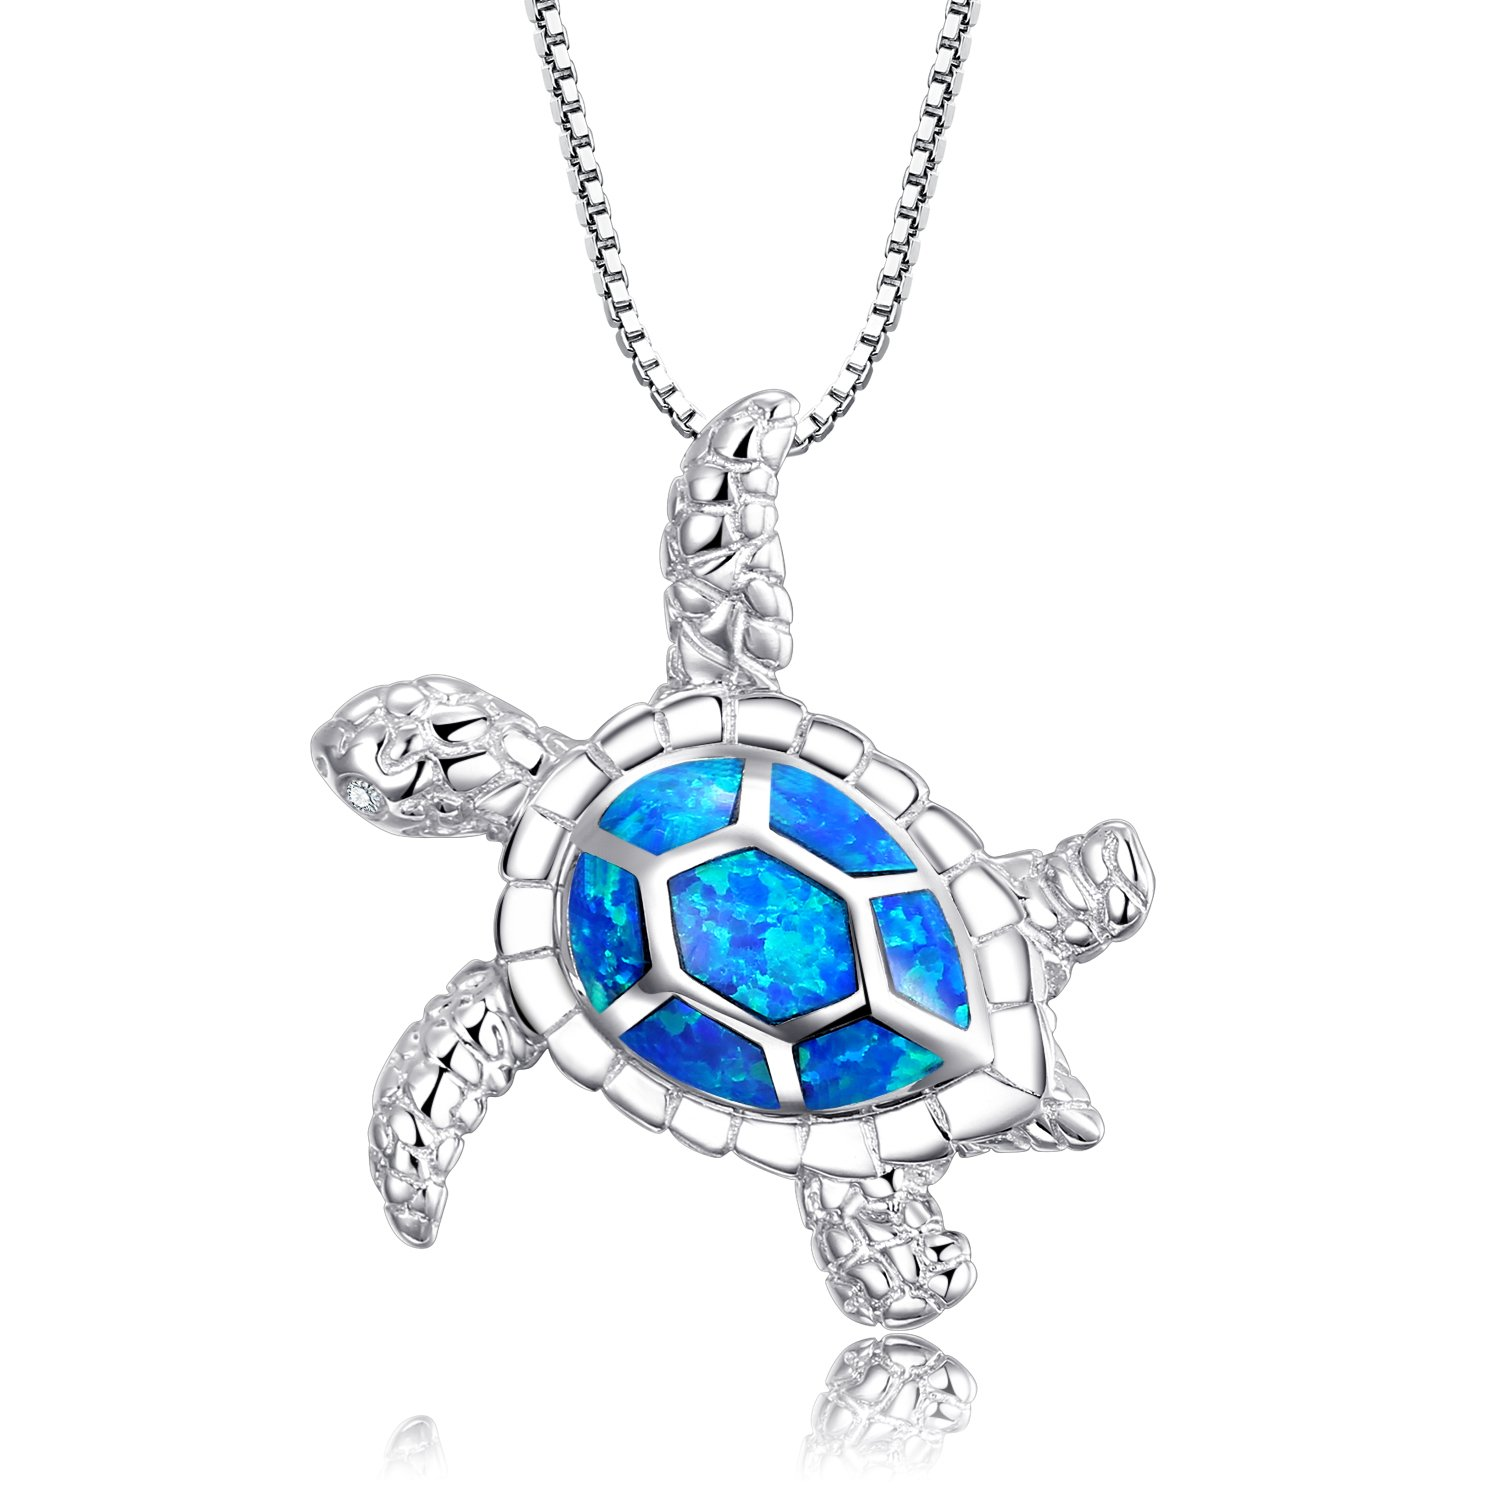 Victoria Jewelry [Health and Longevity] 925 Sterling Silver Created Blue Opal Sea Turtle Pendant Necklace 18'', Birthstone Jewelry for Women(Blue)